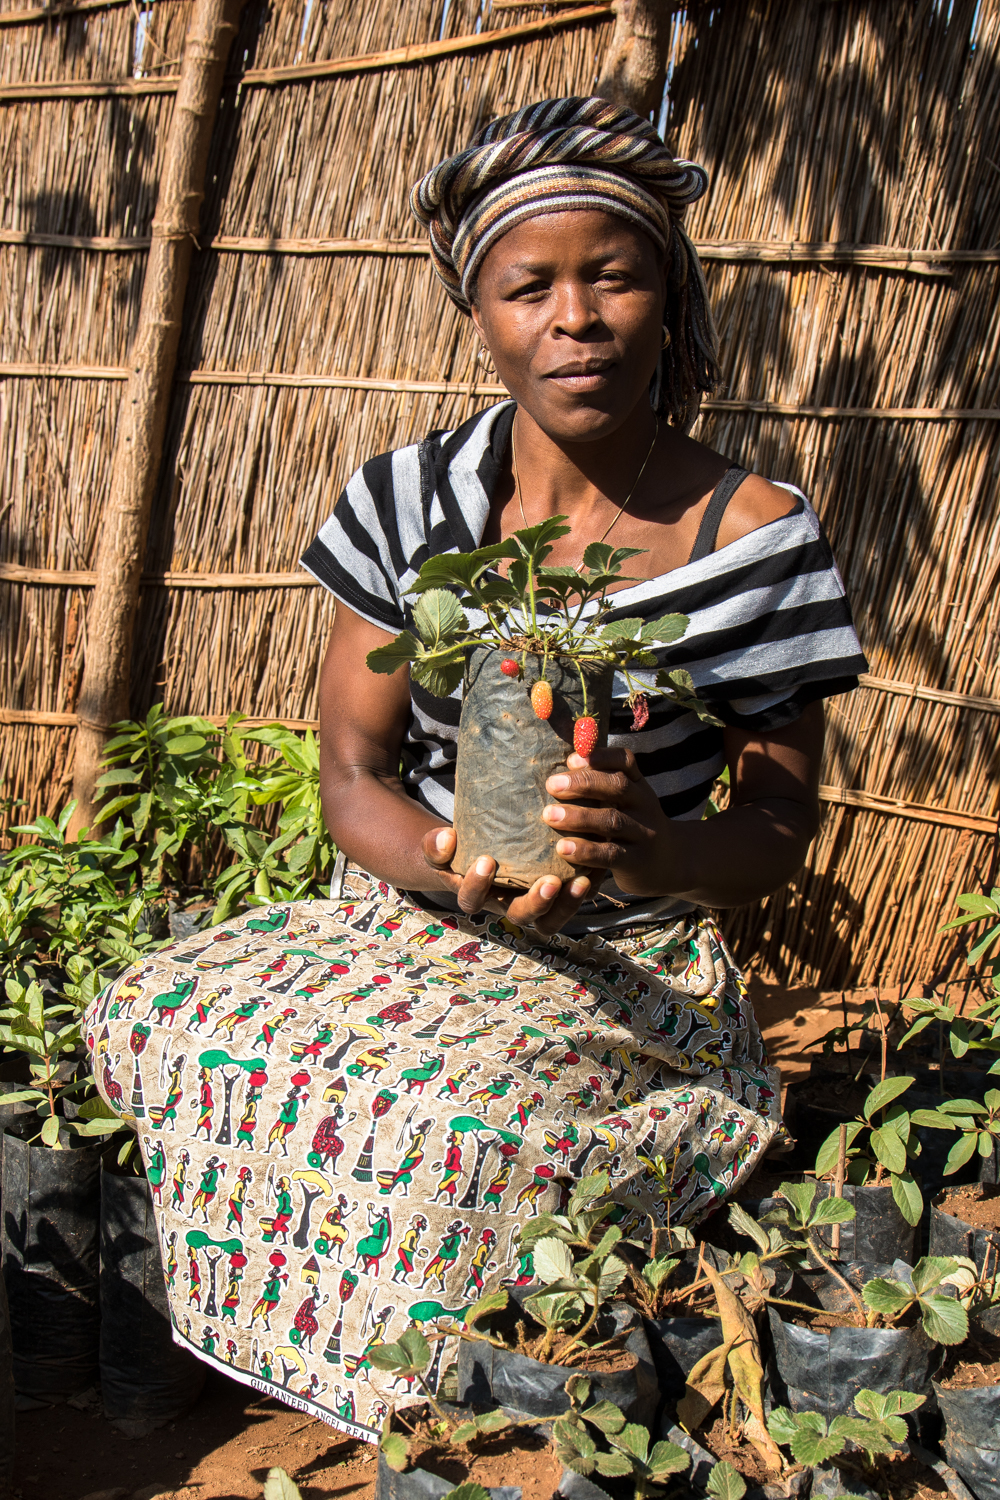 Adam Dickens Photography 2015 - GROW Malawi - Jean Ndalo 1346.jpg